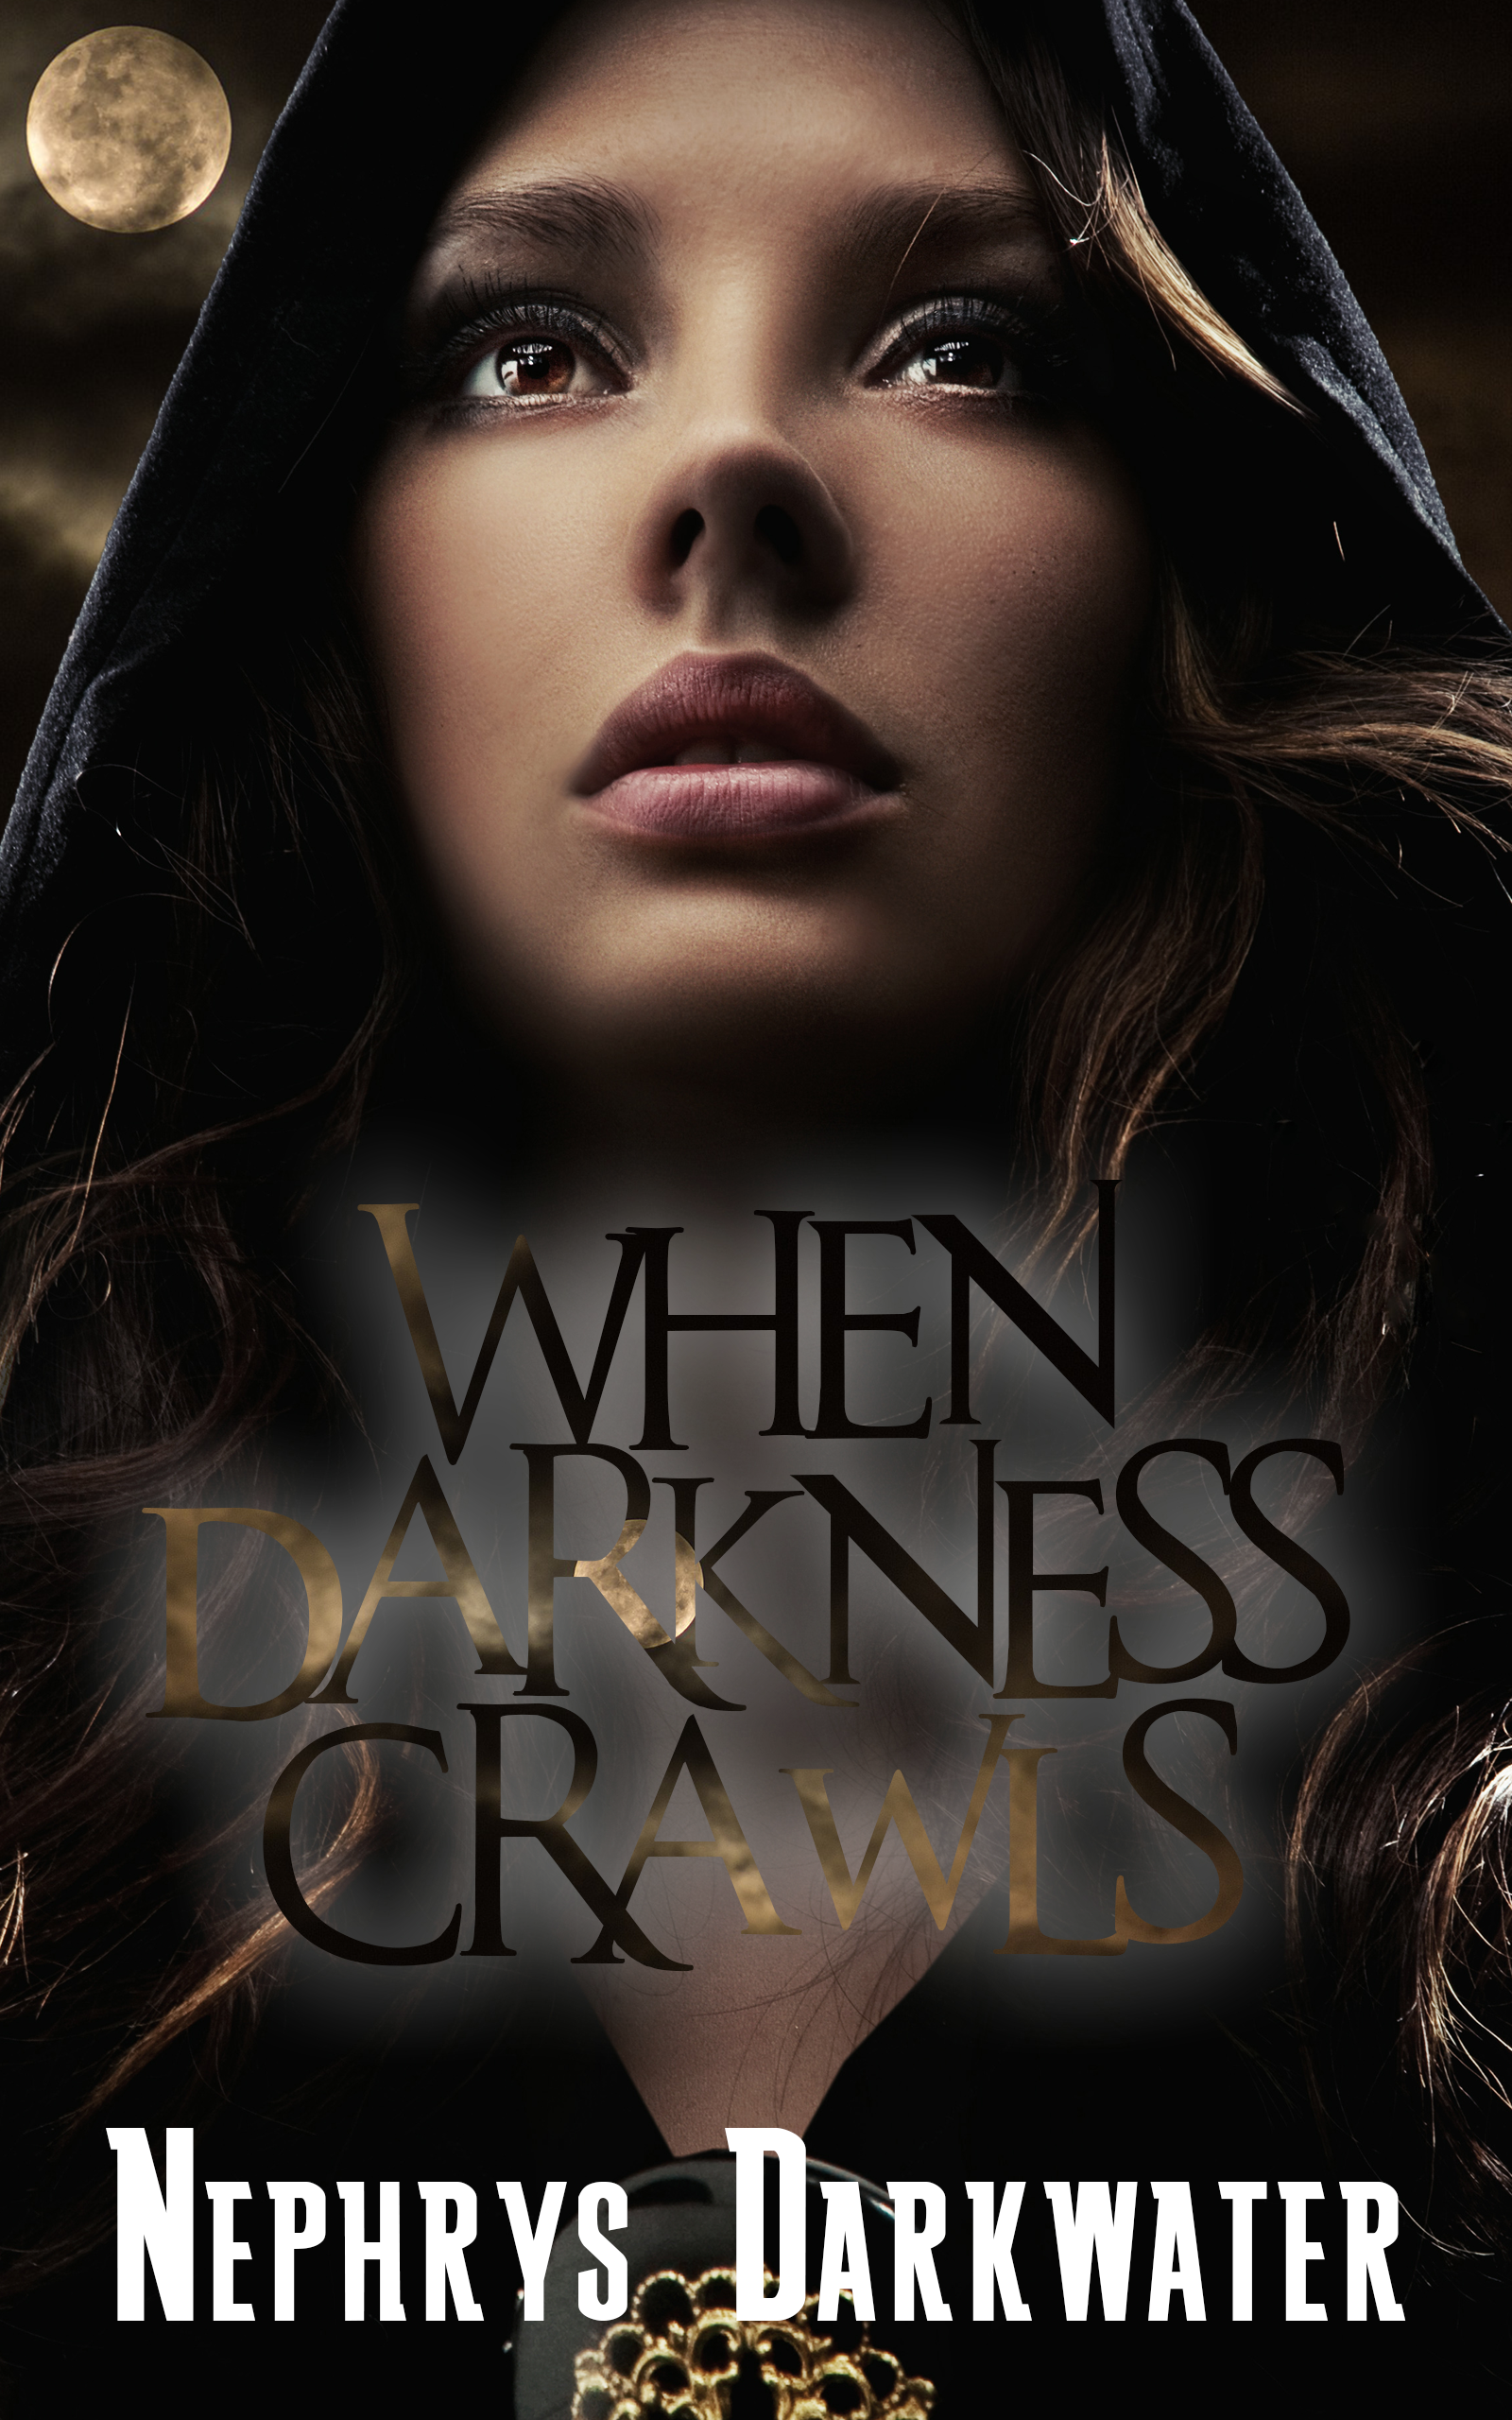 When Darkness Crawls by Nephrys Darkwater